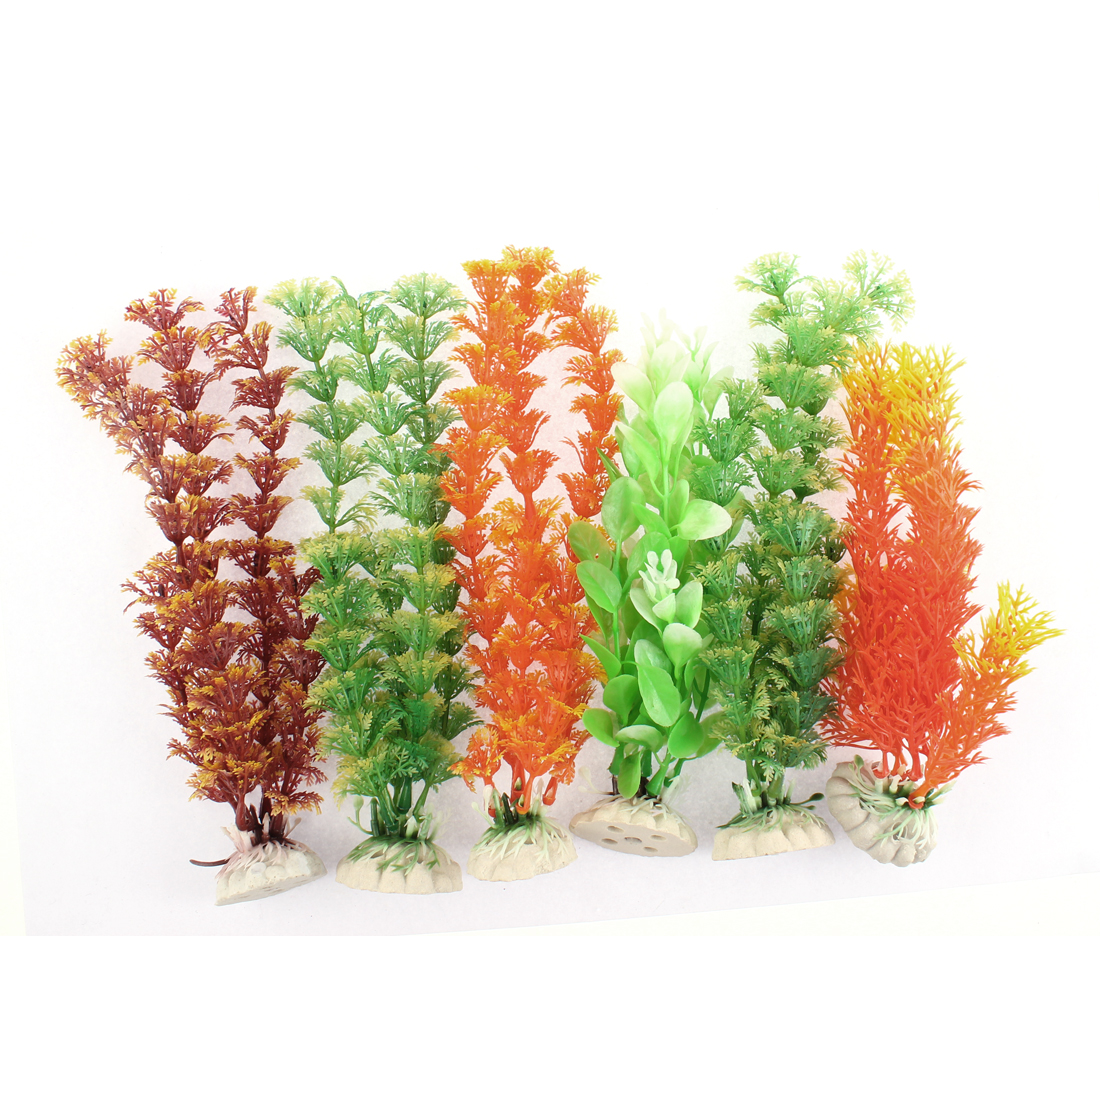 Aquarium Aquascaping Plastic Emulational Water Plant Decor 6 in 1